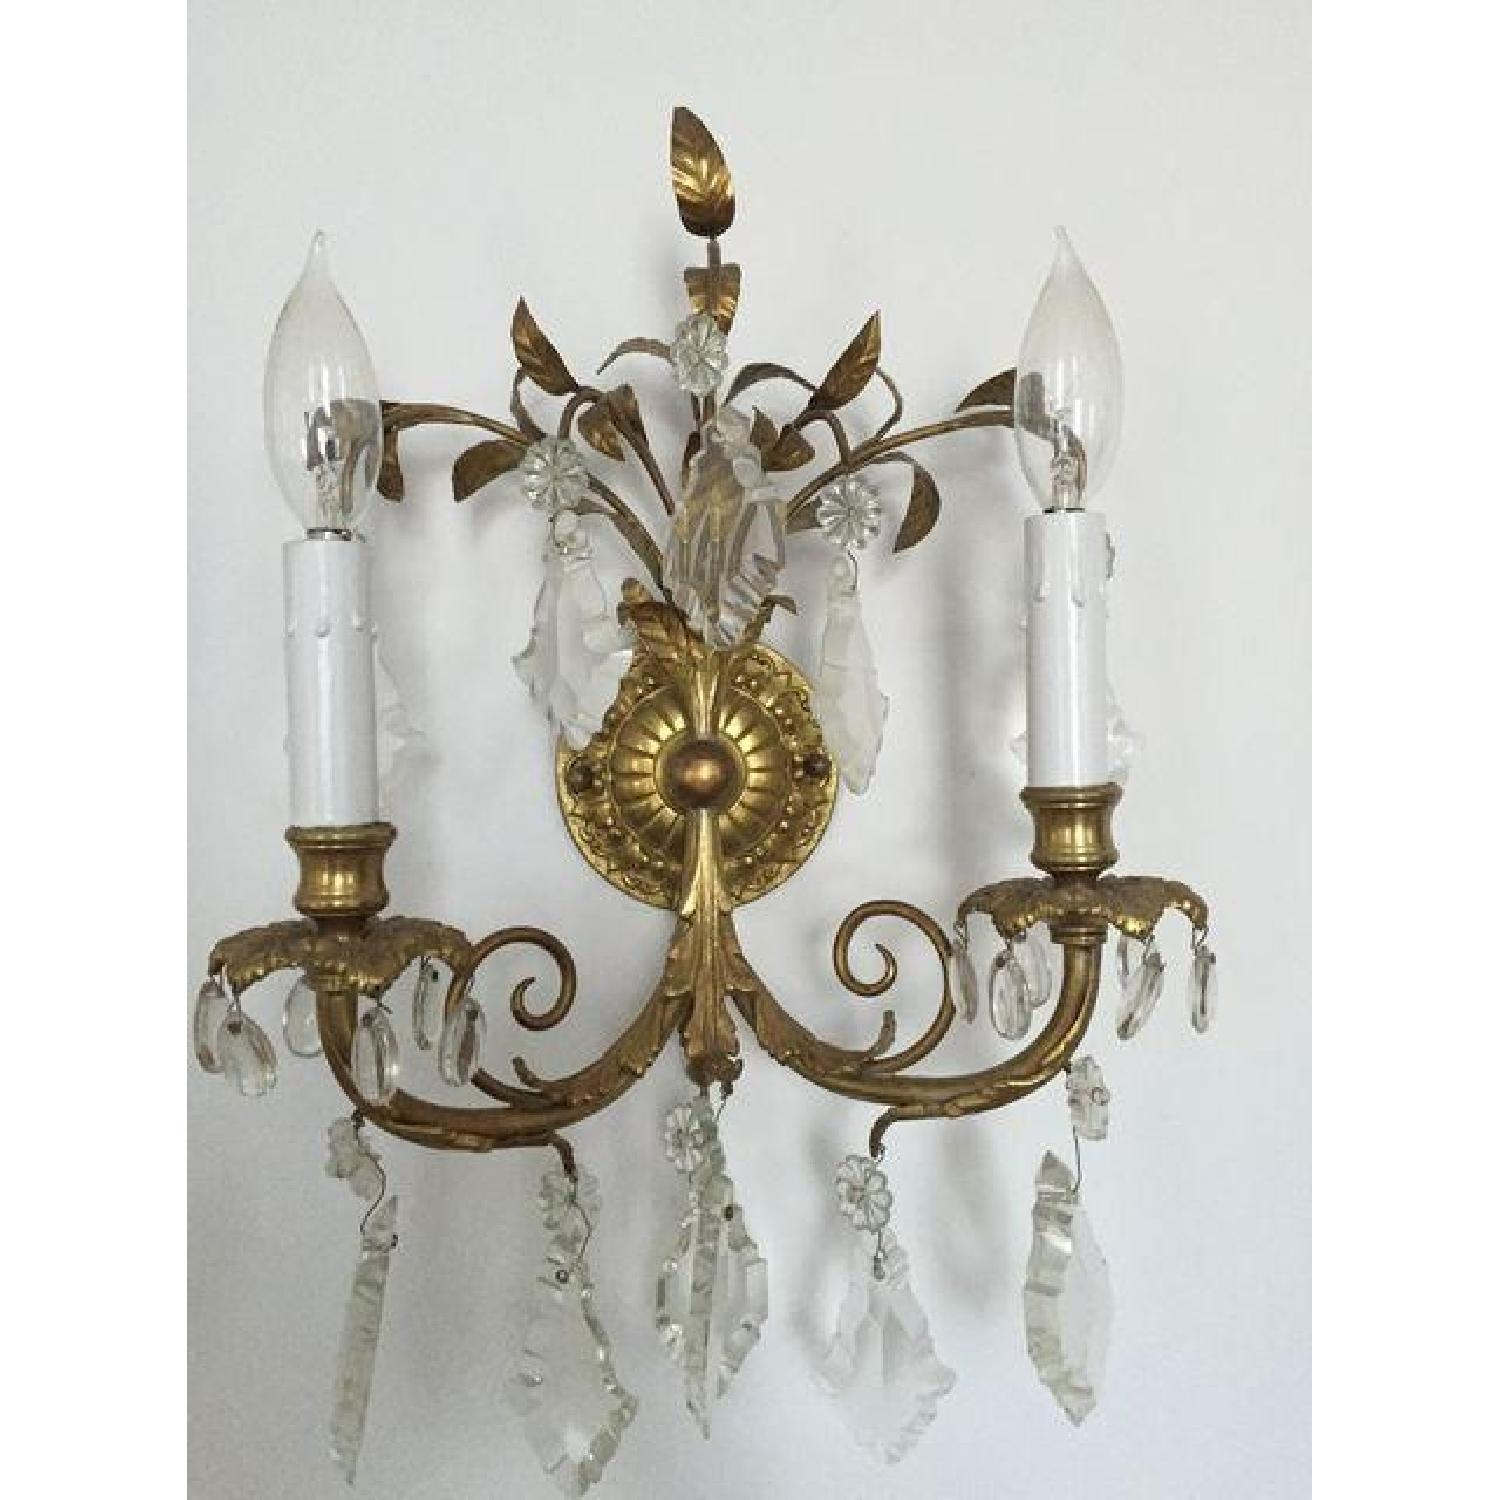 Antique French Wall Sconces - image-2